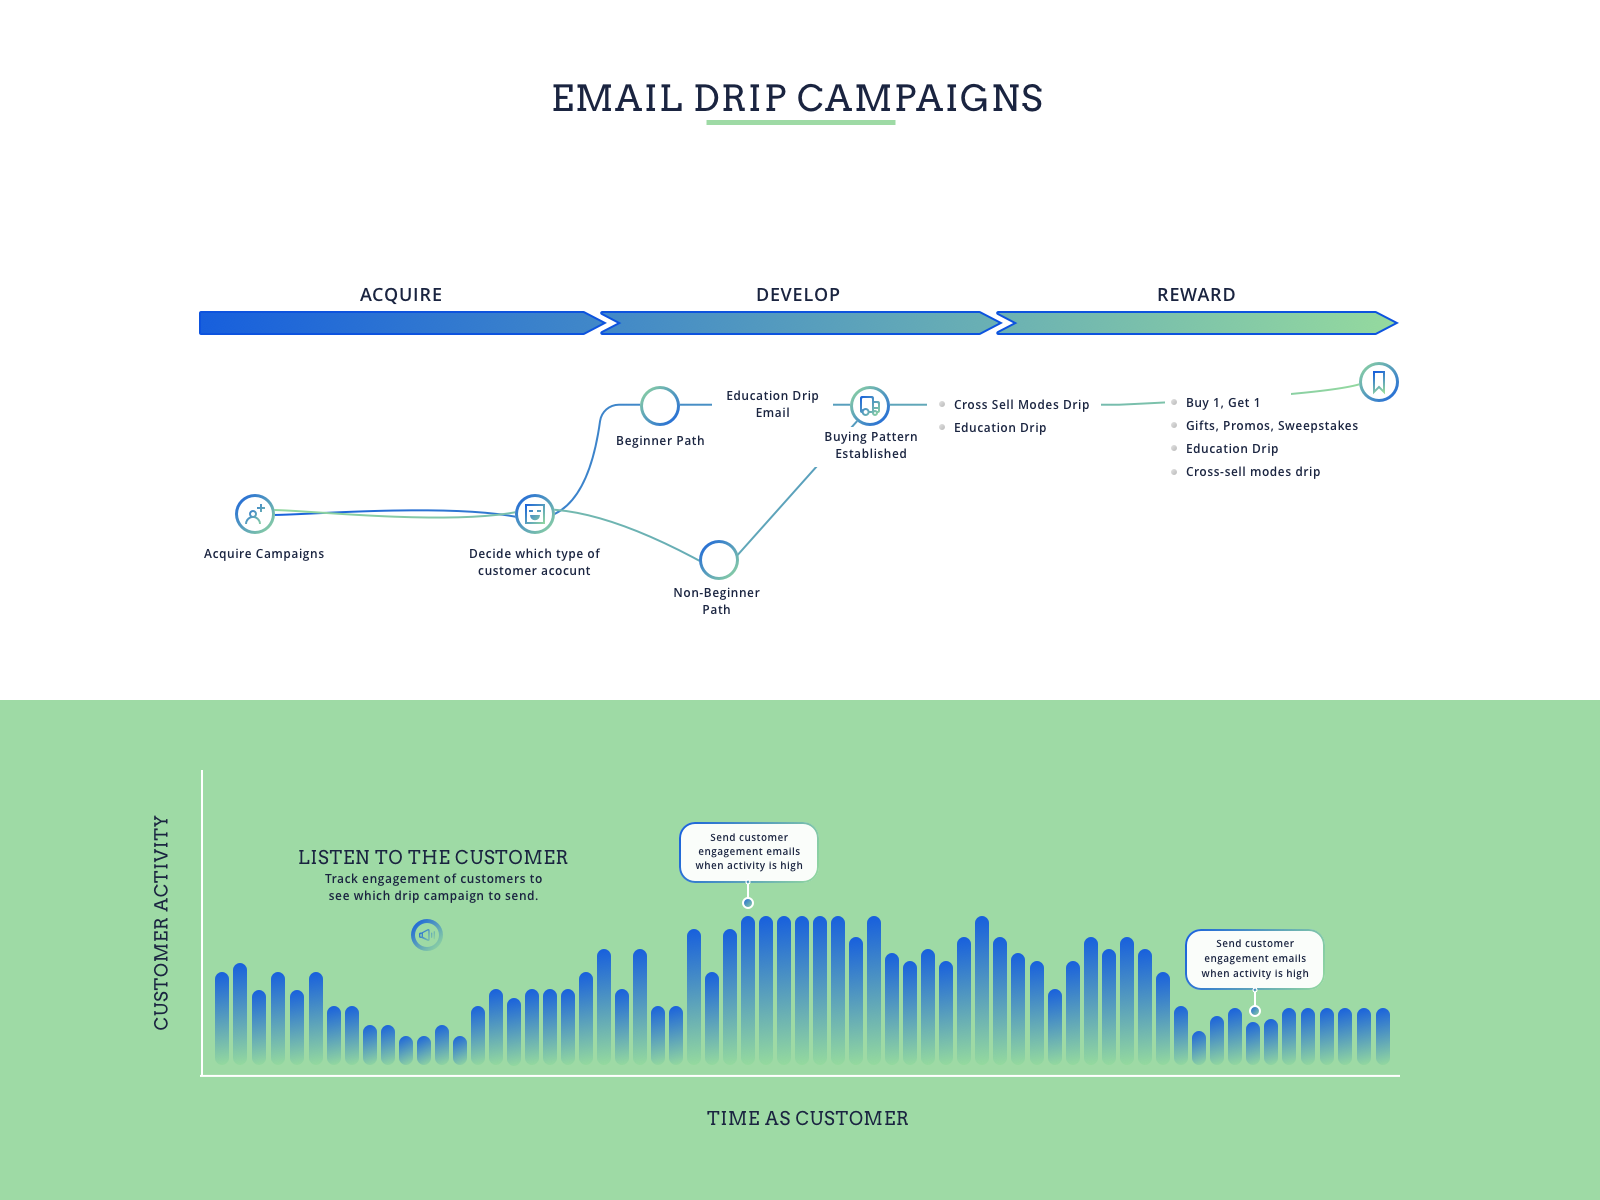 Email drip campaign journey